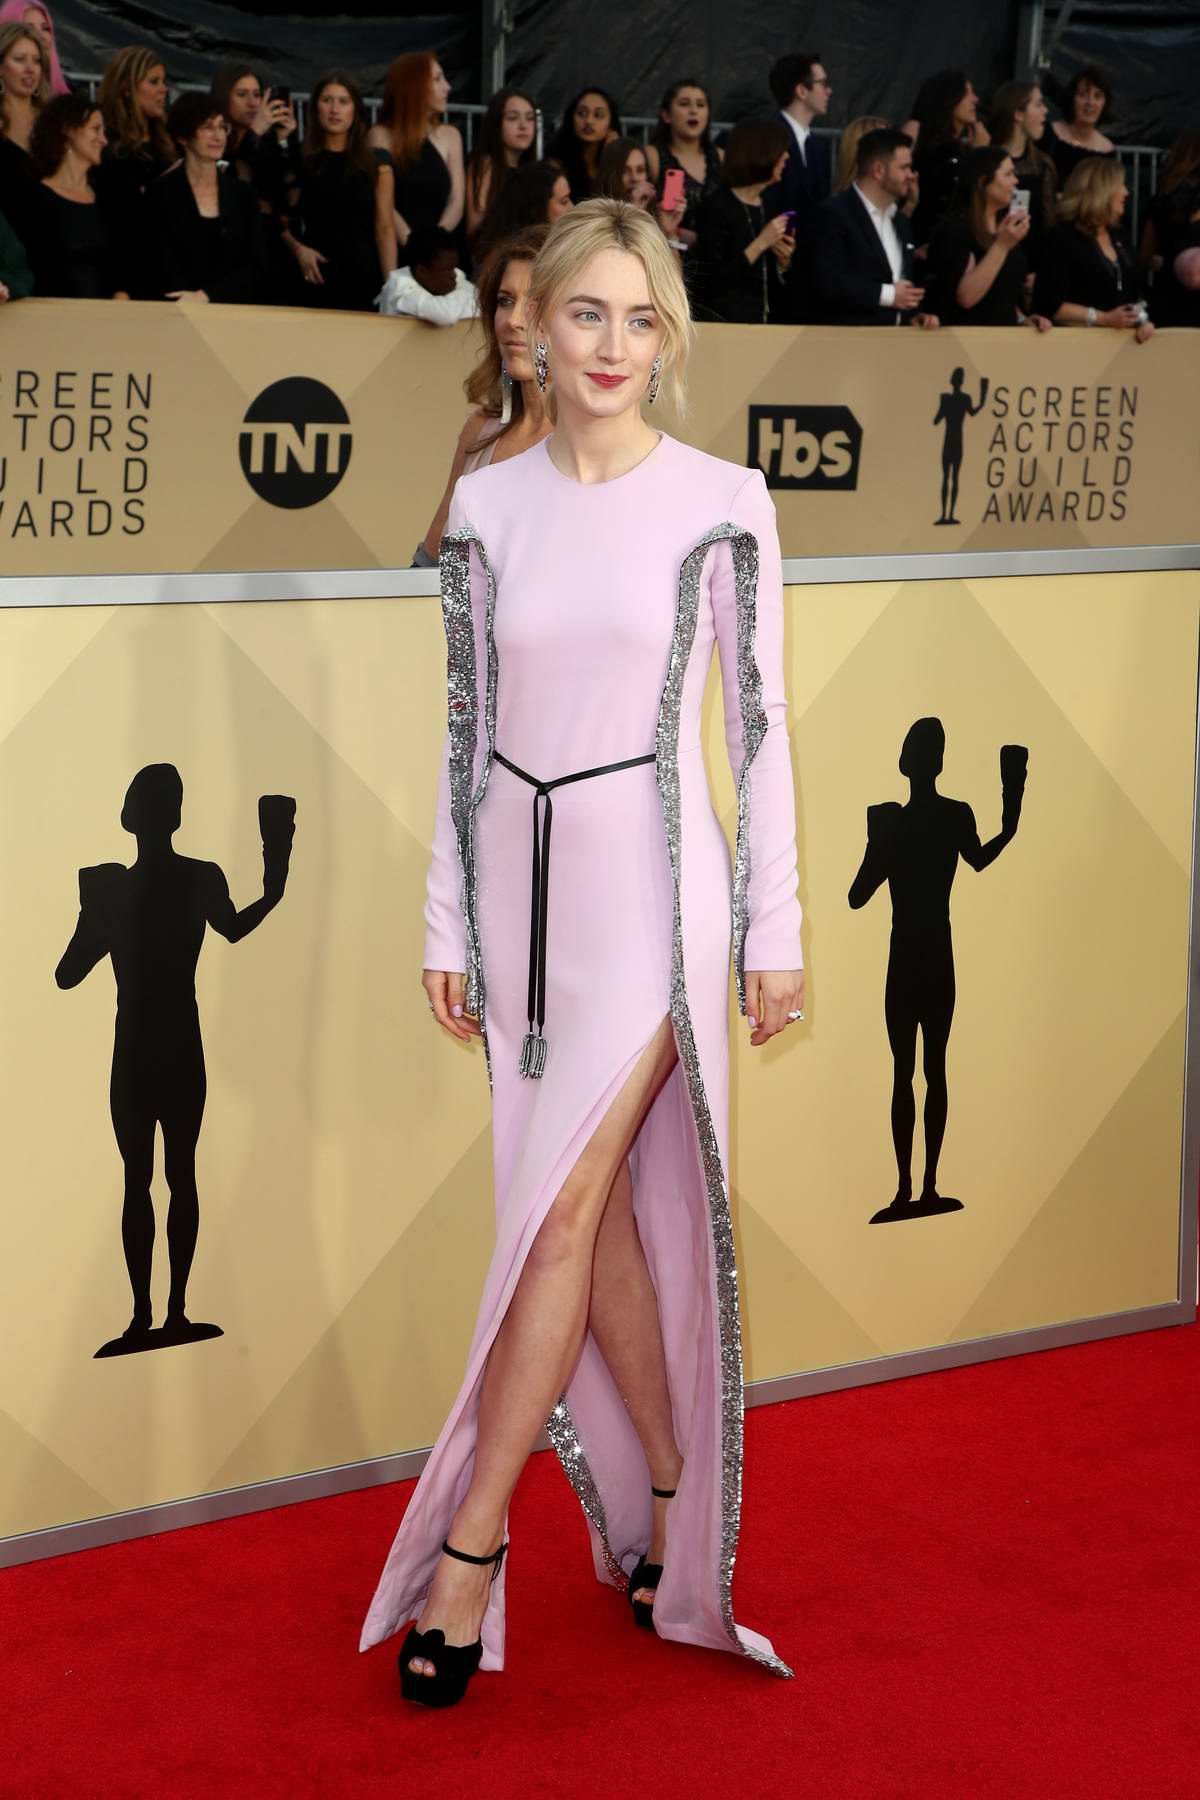 Saoirse Ronan attends the 24th Annual Screen Actors Guild (SAGs) Awards 2018 at The Shrine Auditorium in Los Angeles